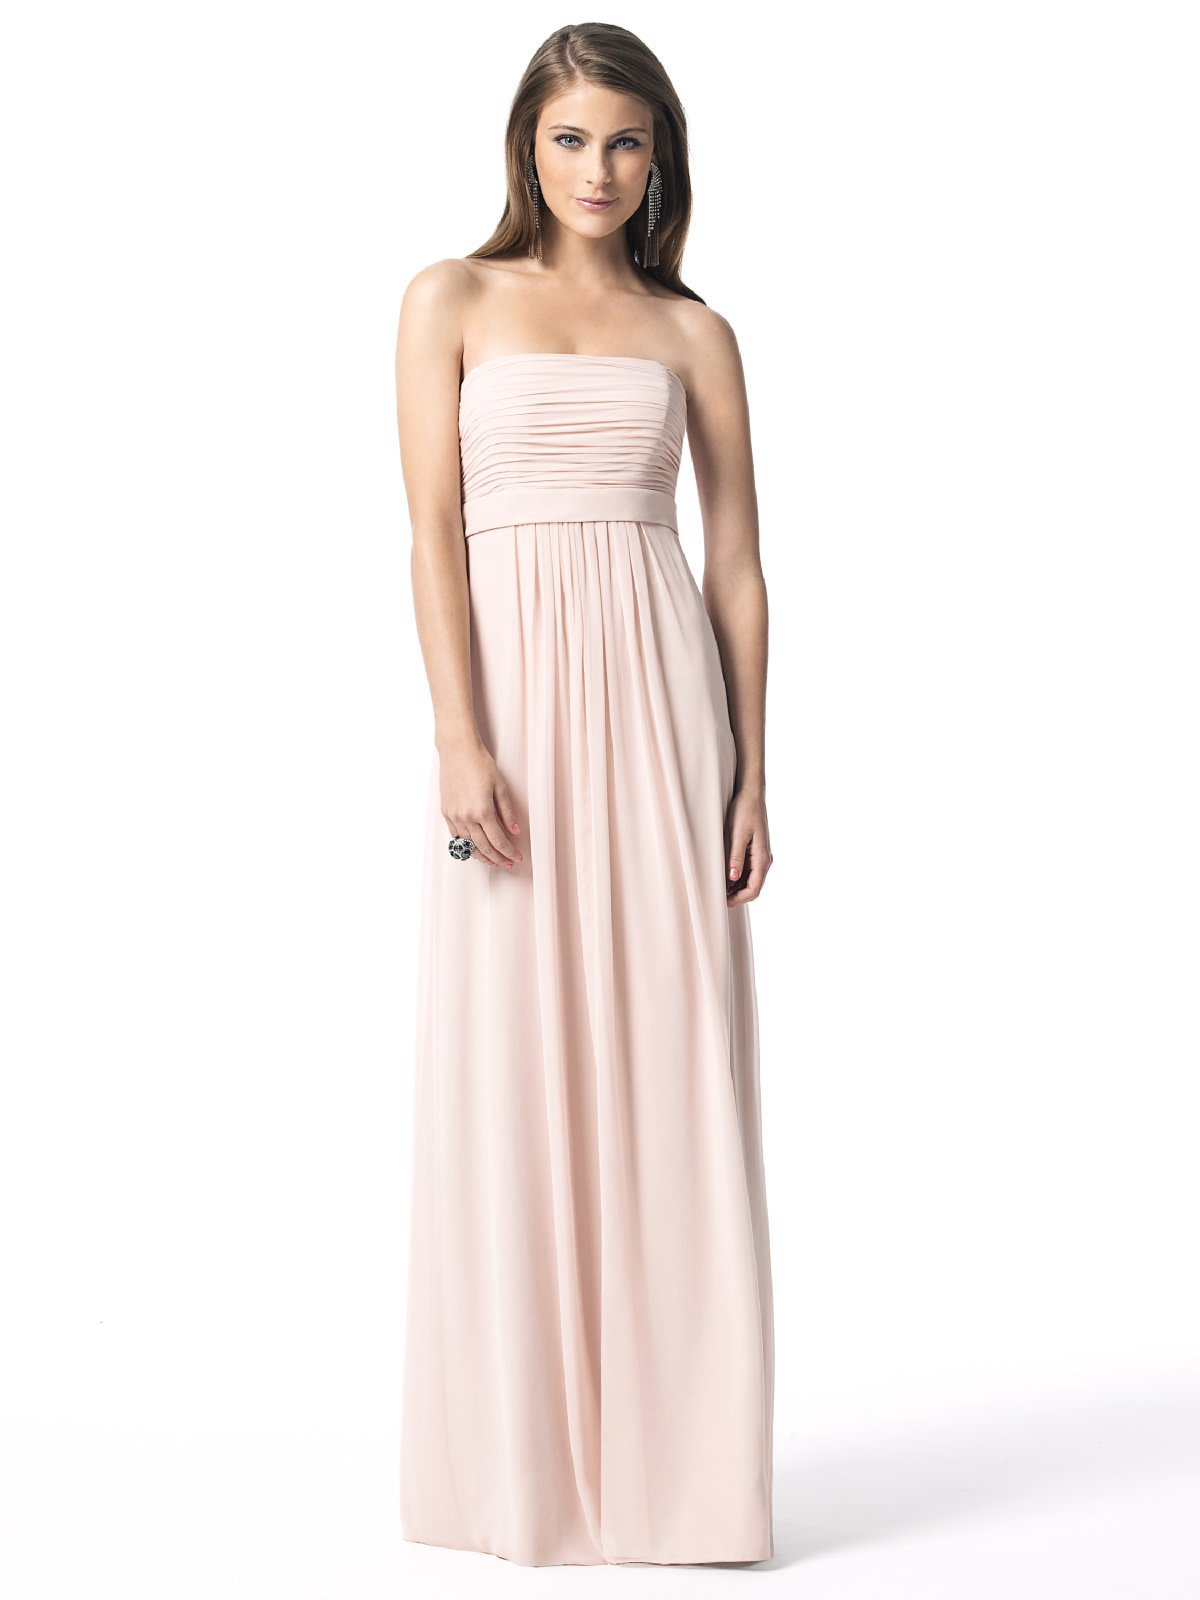 Pale Pink Column Strapless Zipper Floor Length Pleated Chiffon Prom Dresses